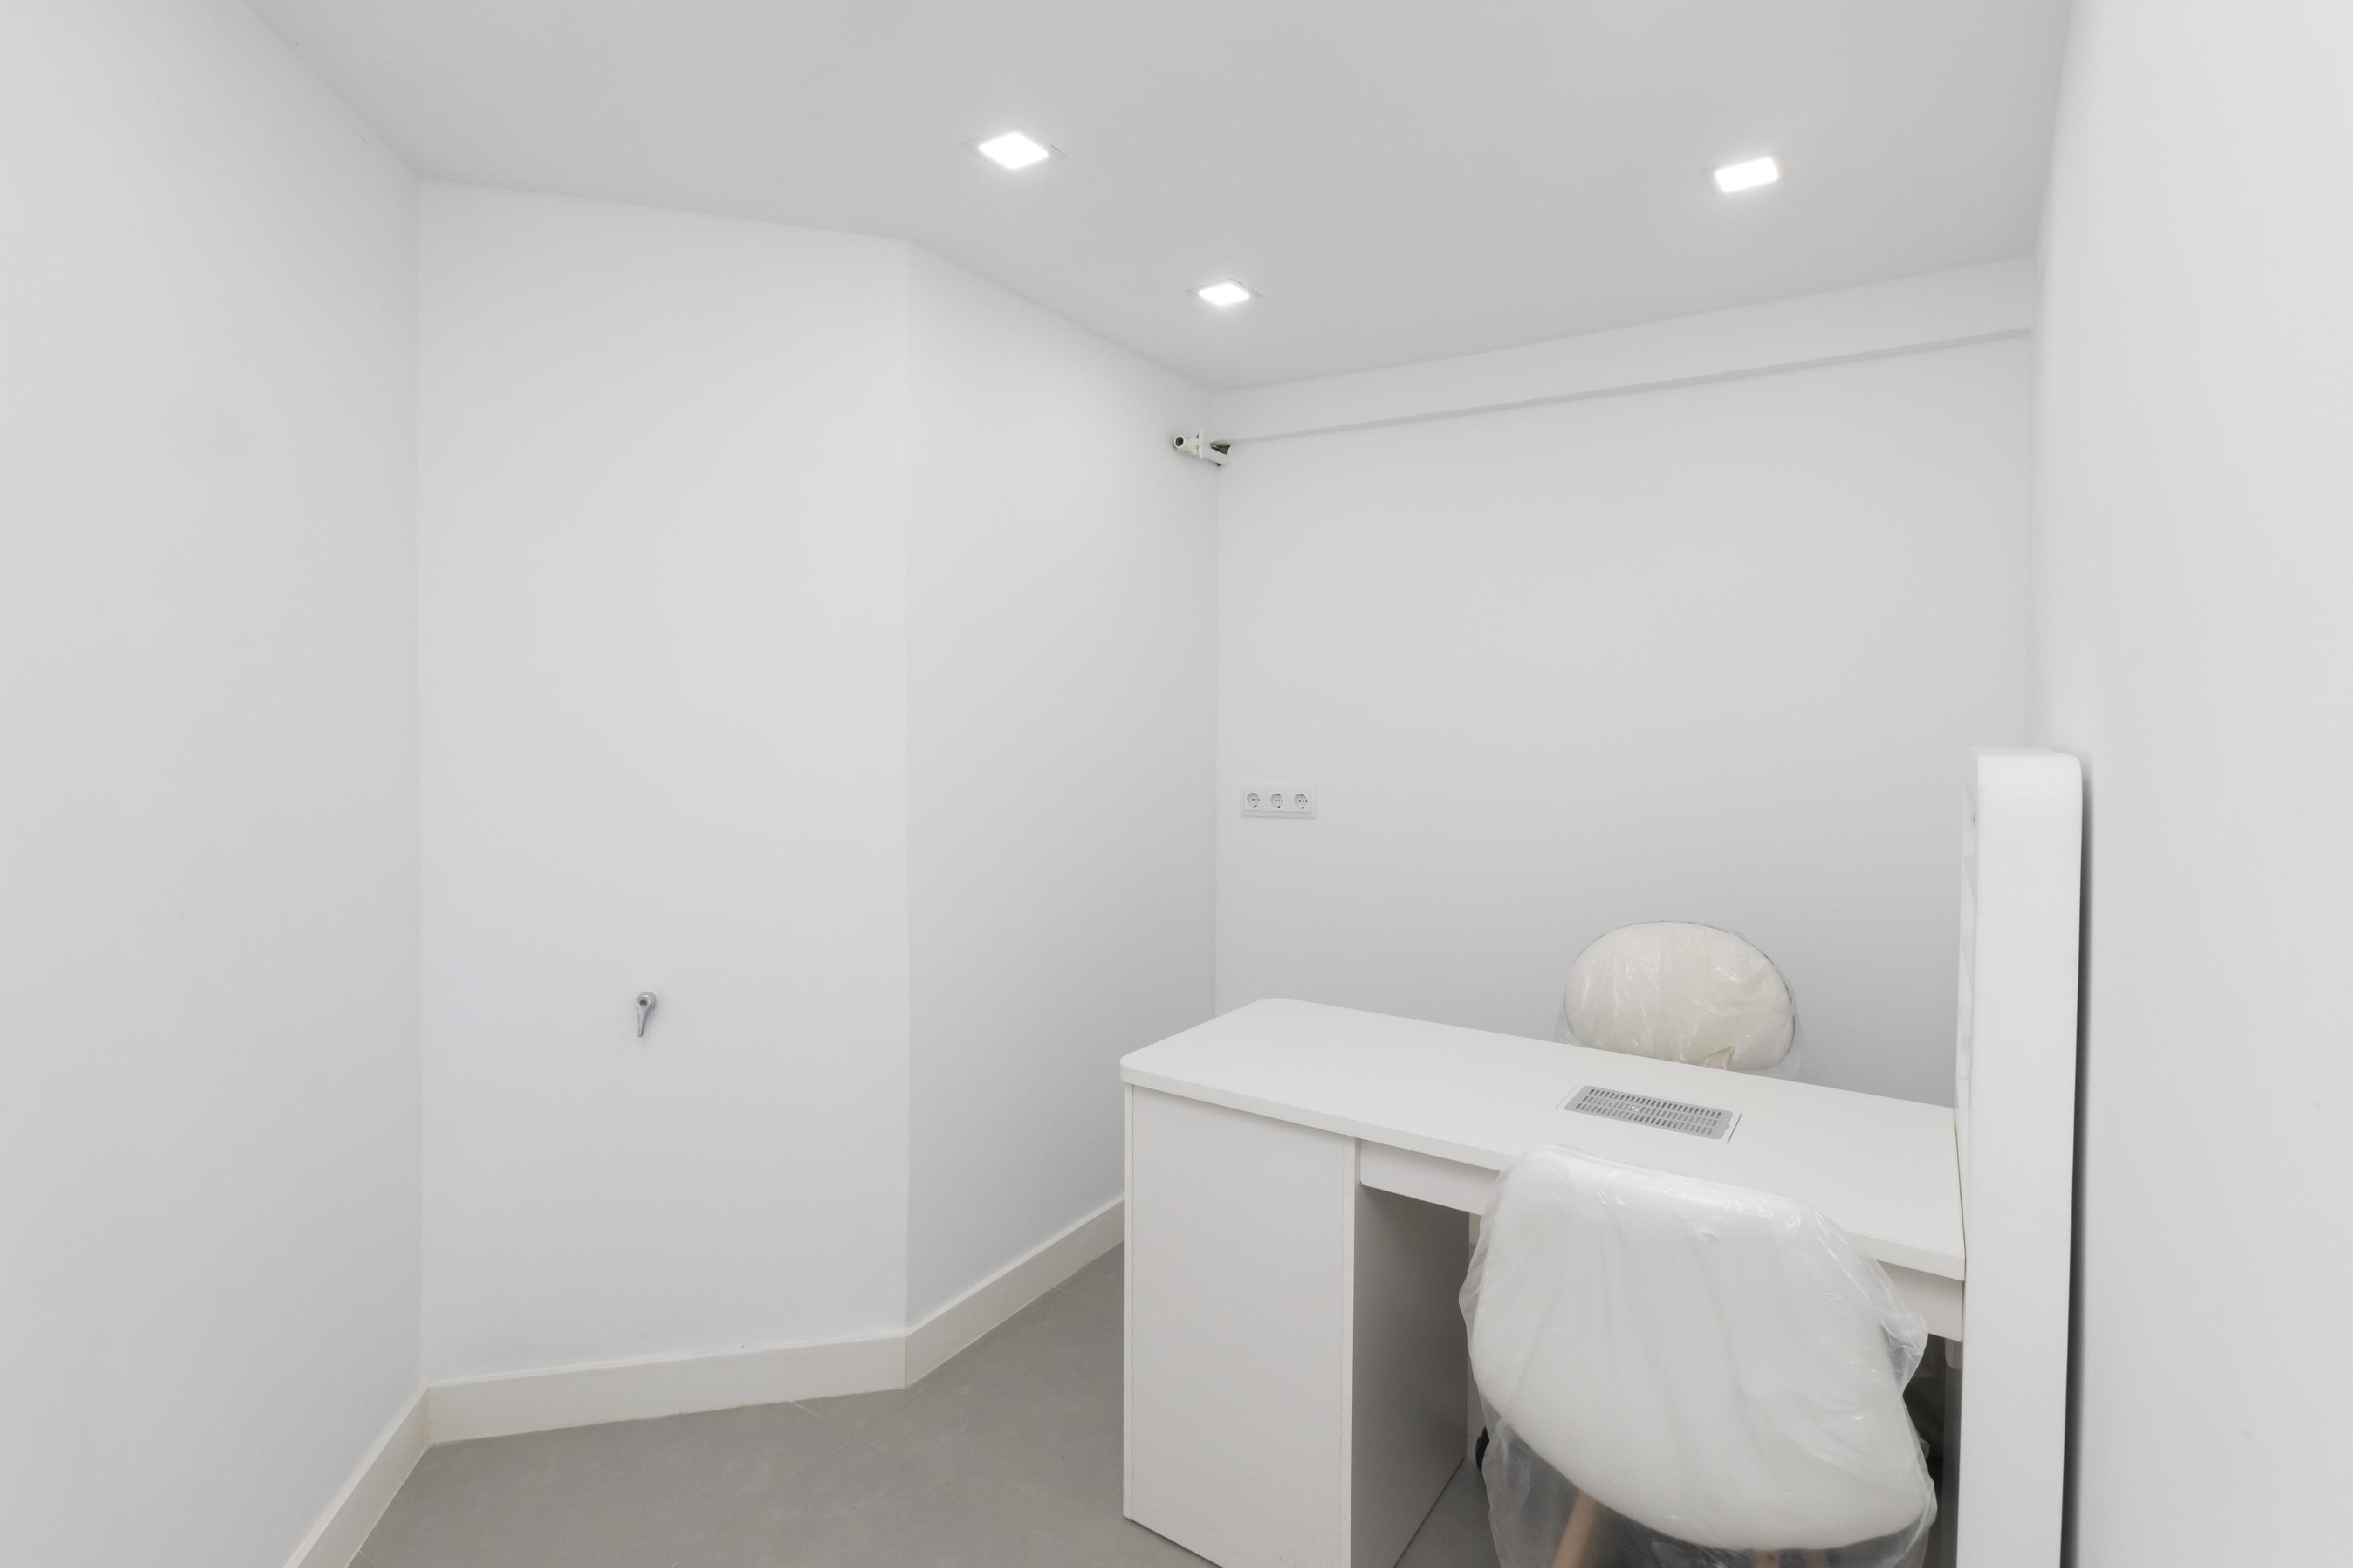 242978 Flat for sale in Gràcia, Camp Grassot and Gràcia Nova 11